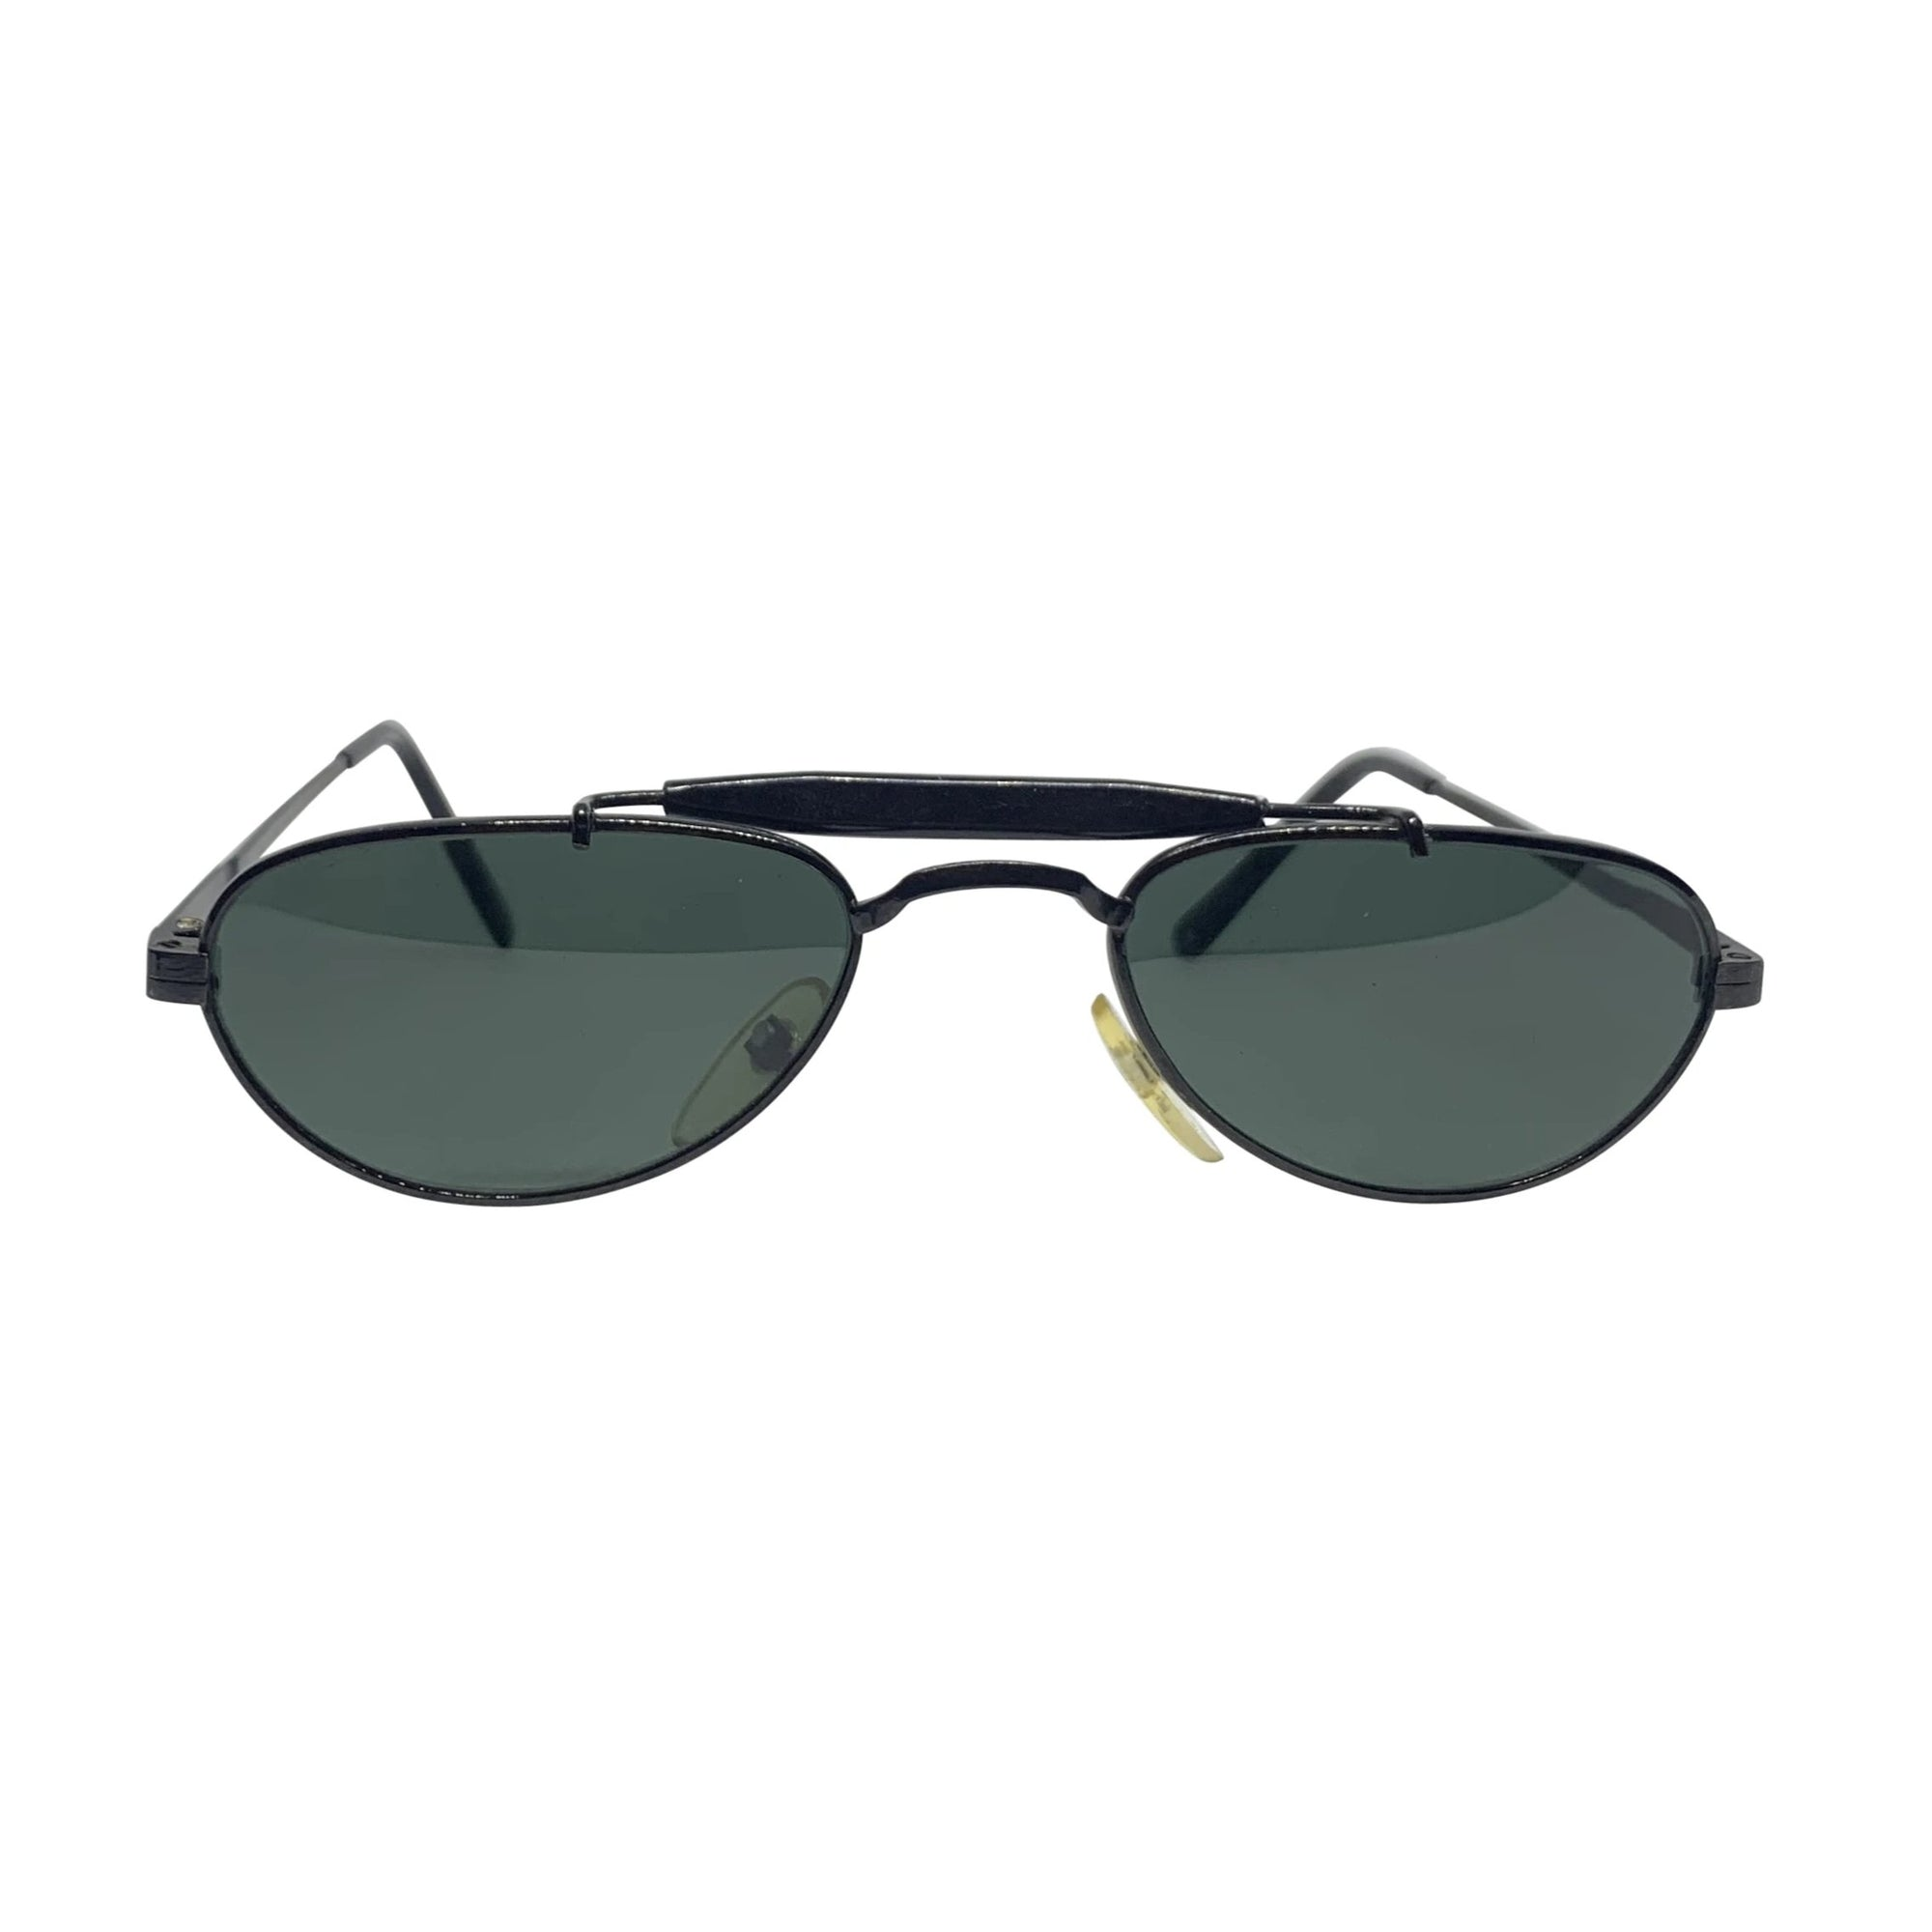 BARACK-O Black on Black Small Aviator Sunnies